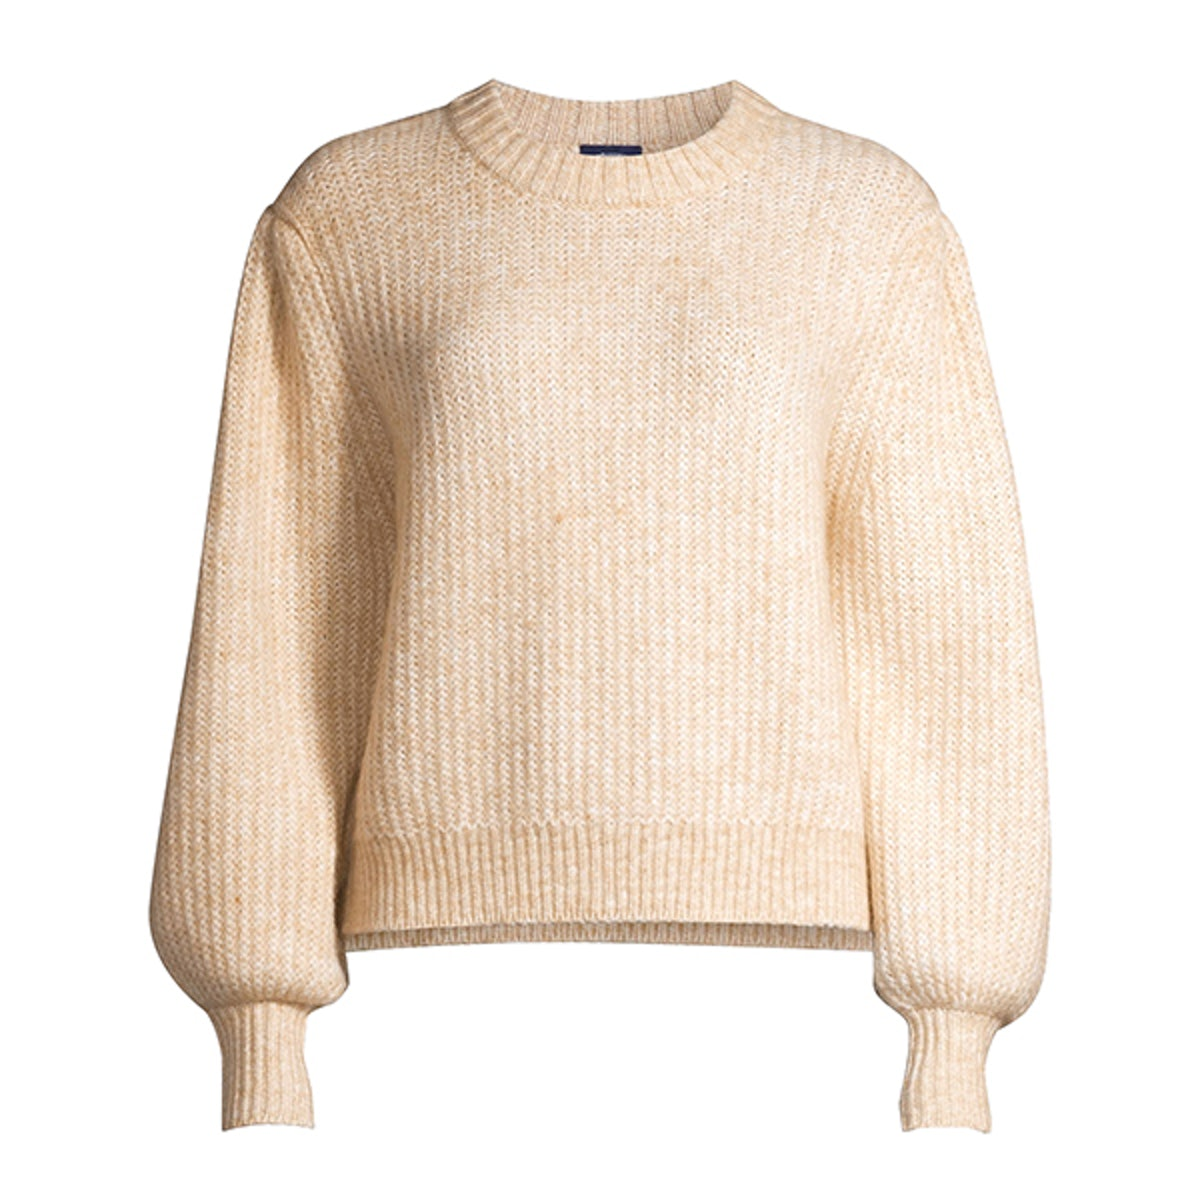 Cropped Balloon Sleeve Sweater